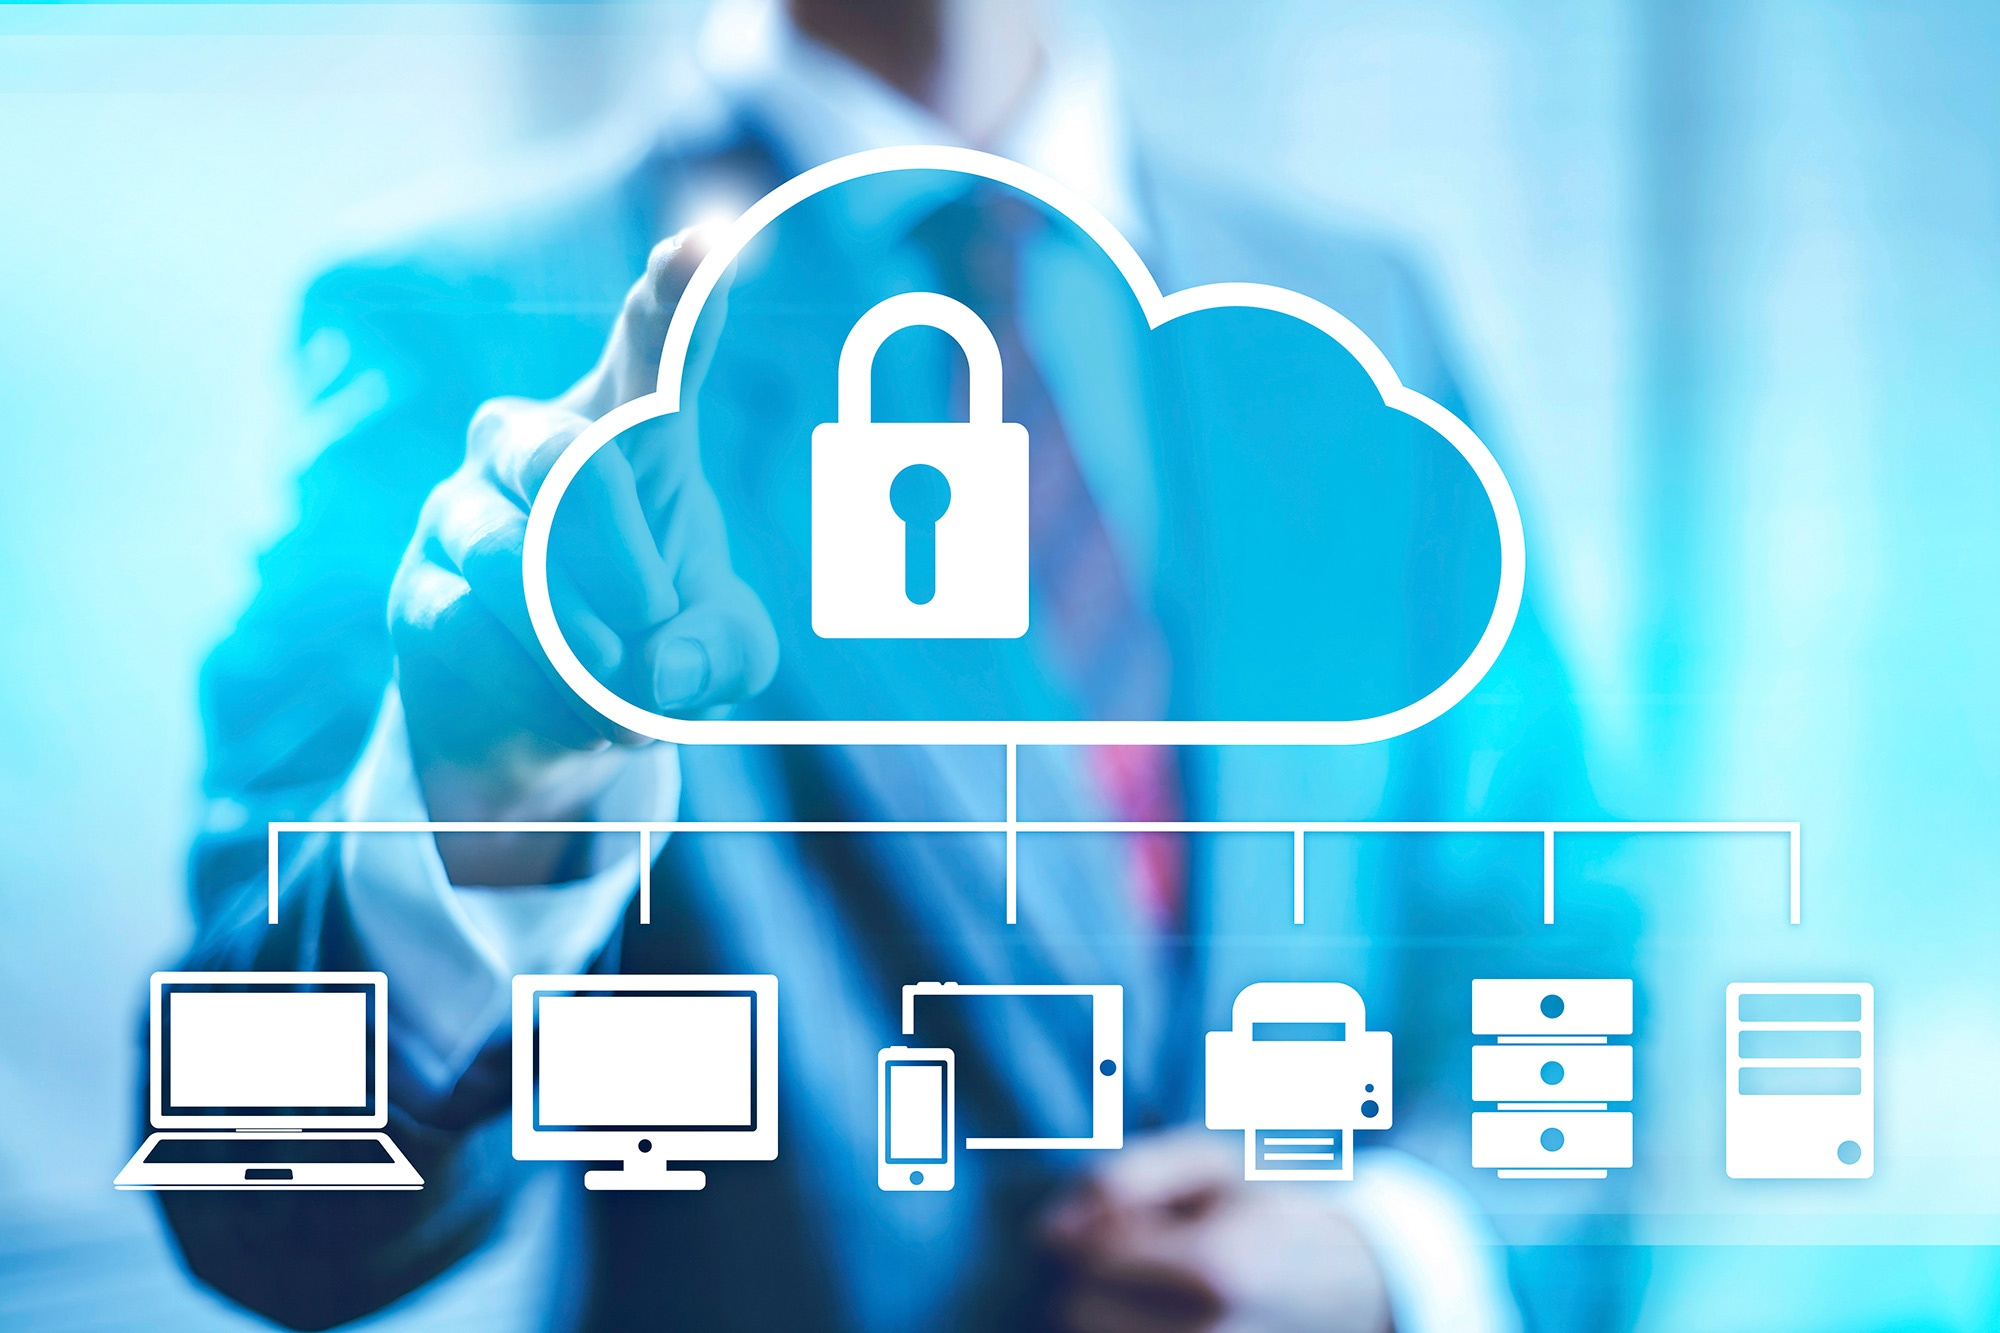 Fearing Cloud and IoT Leads to Privacy Concerns